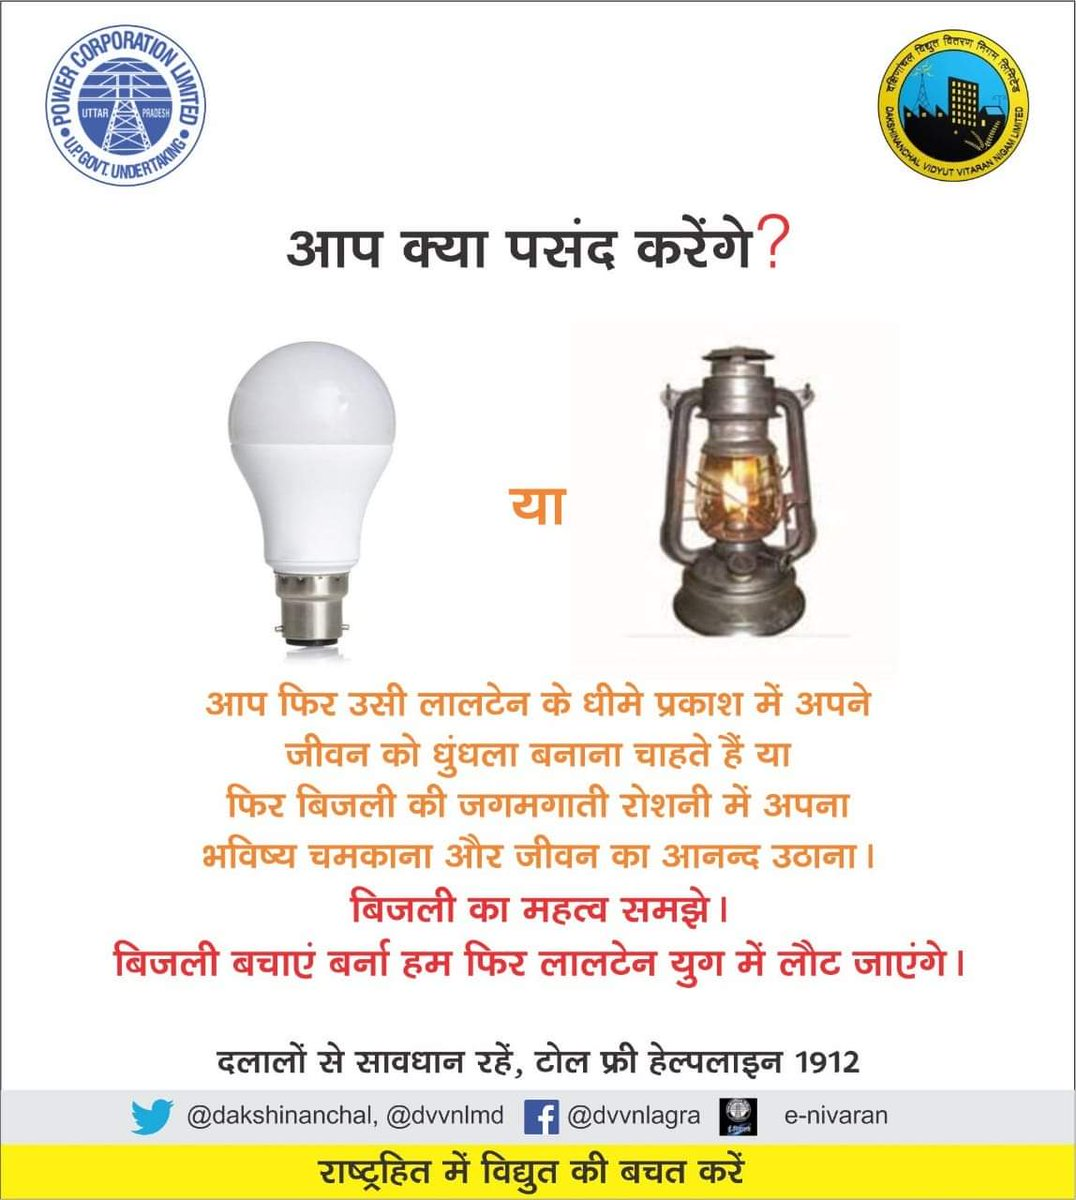 Save Electricity for The Nation<br>http://pic.twitter.com/RirVc4bMHf